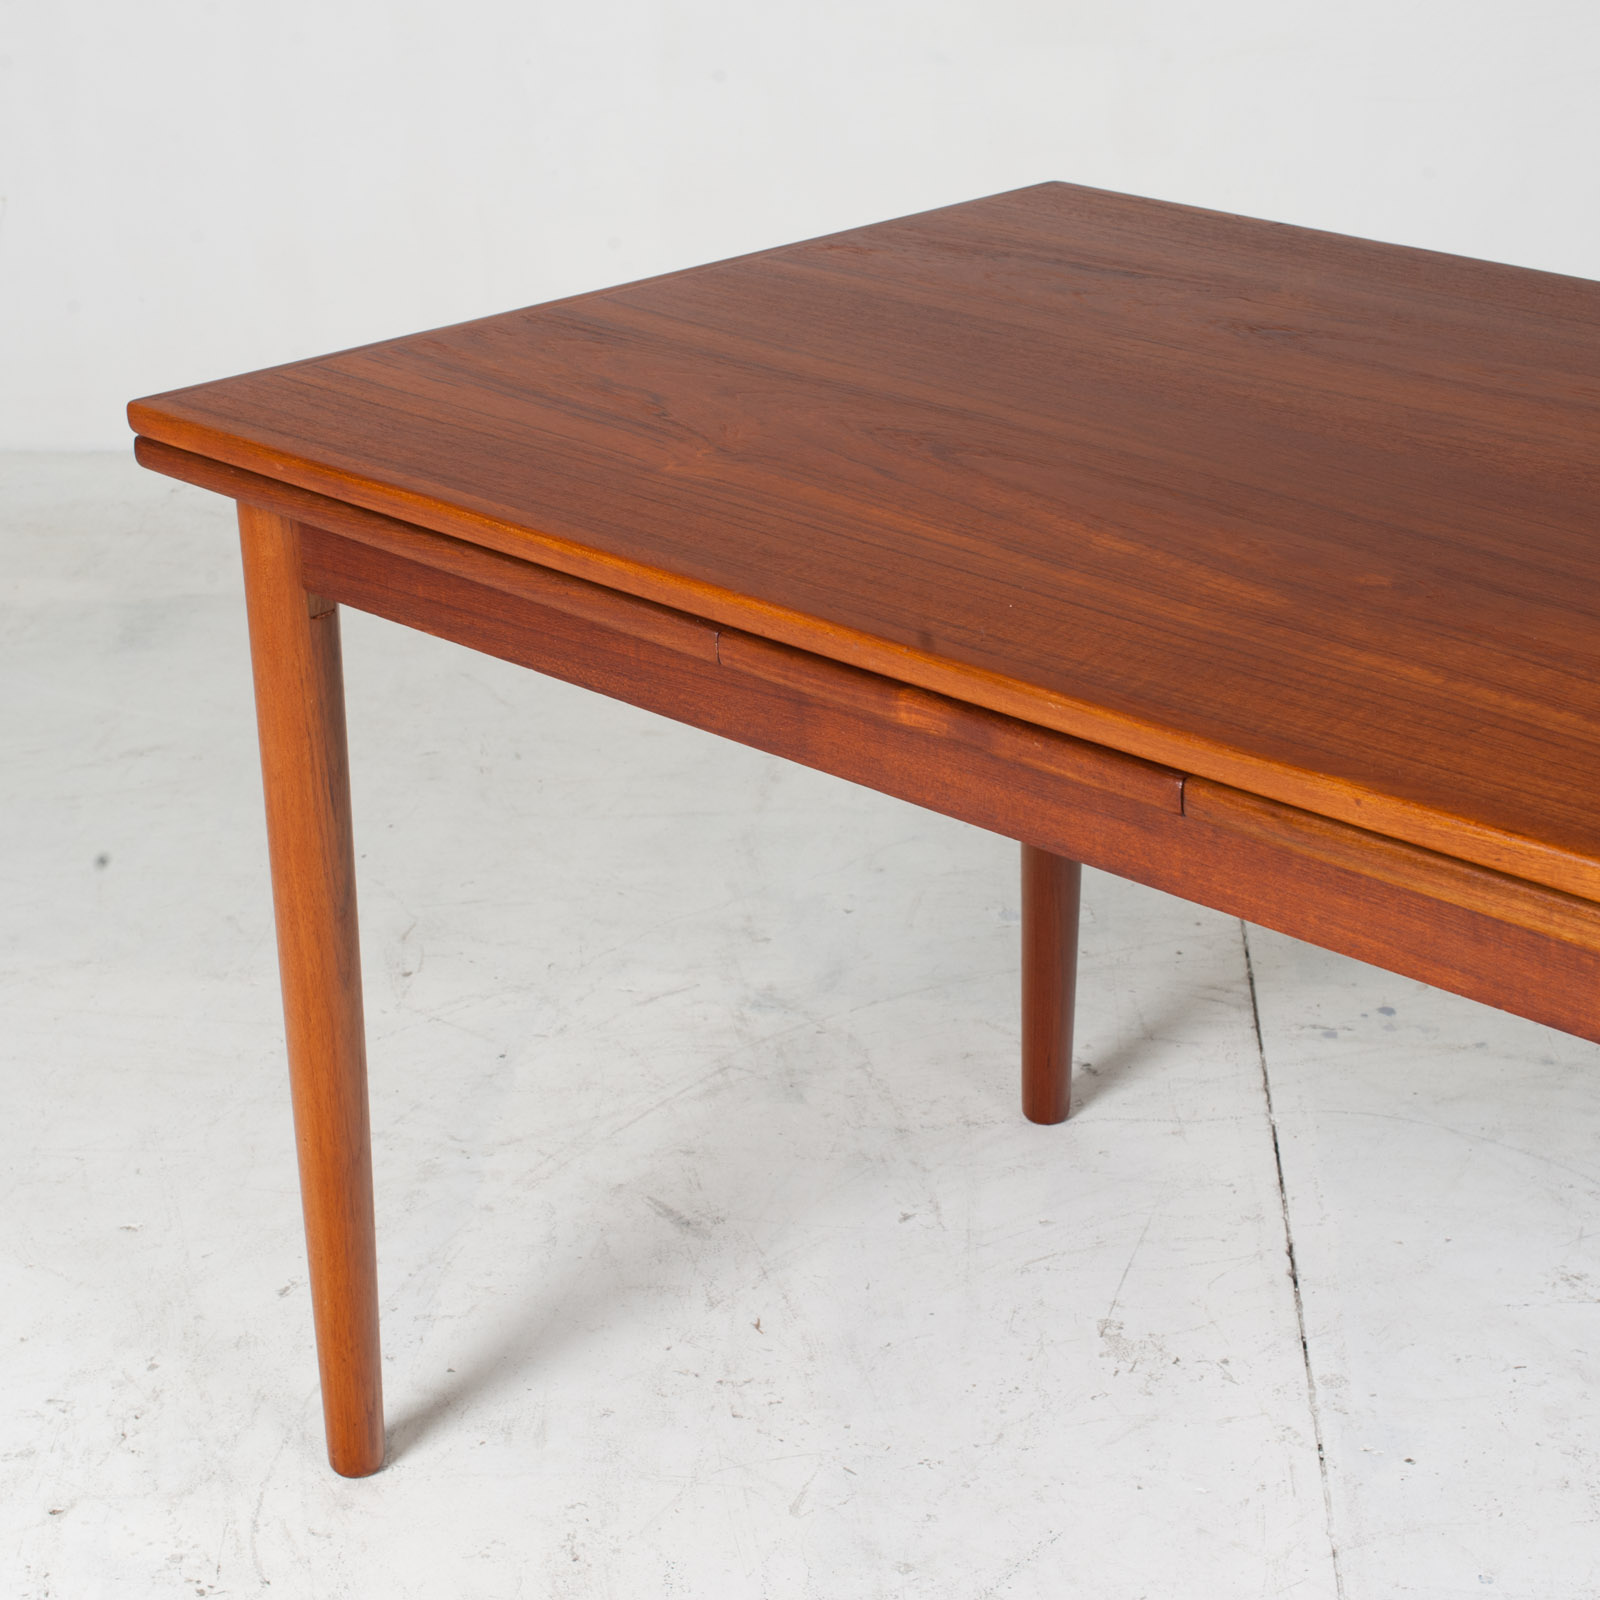 Rectangular Dining Table With Solid Edge In Teak 3